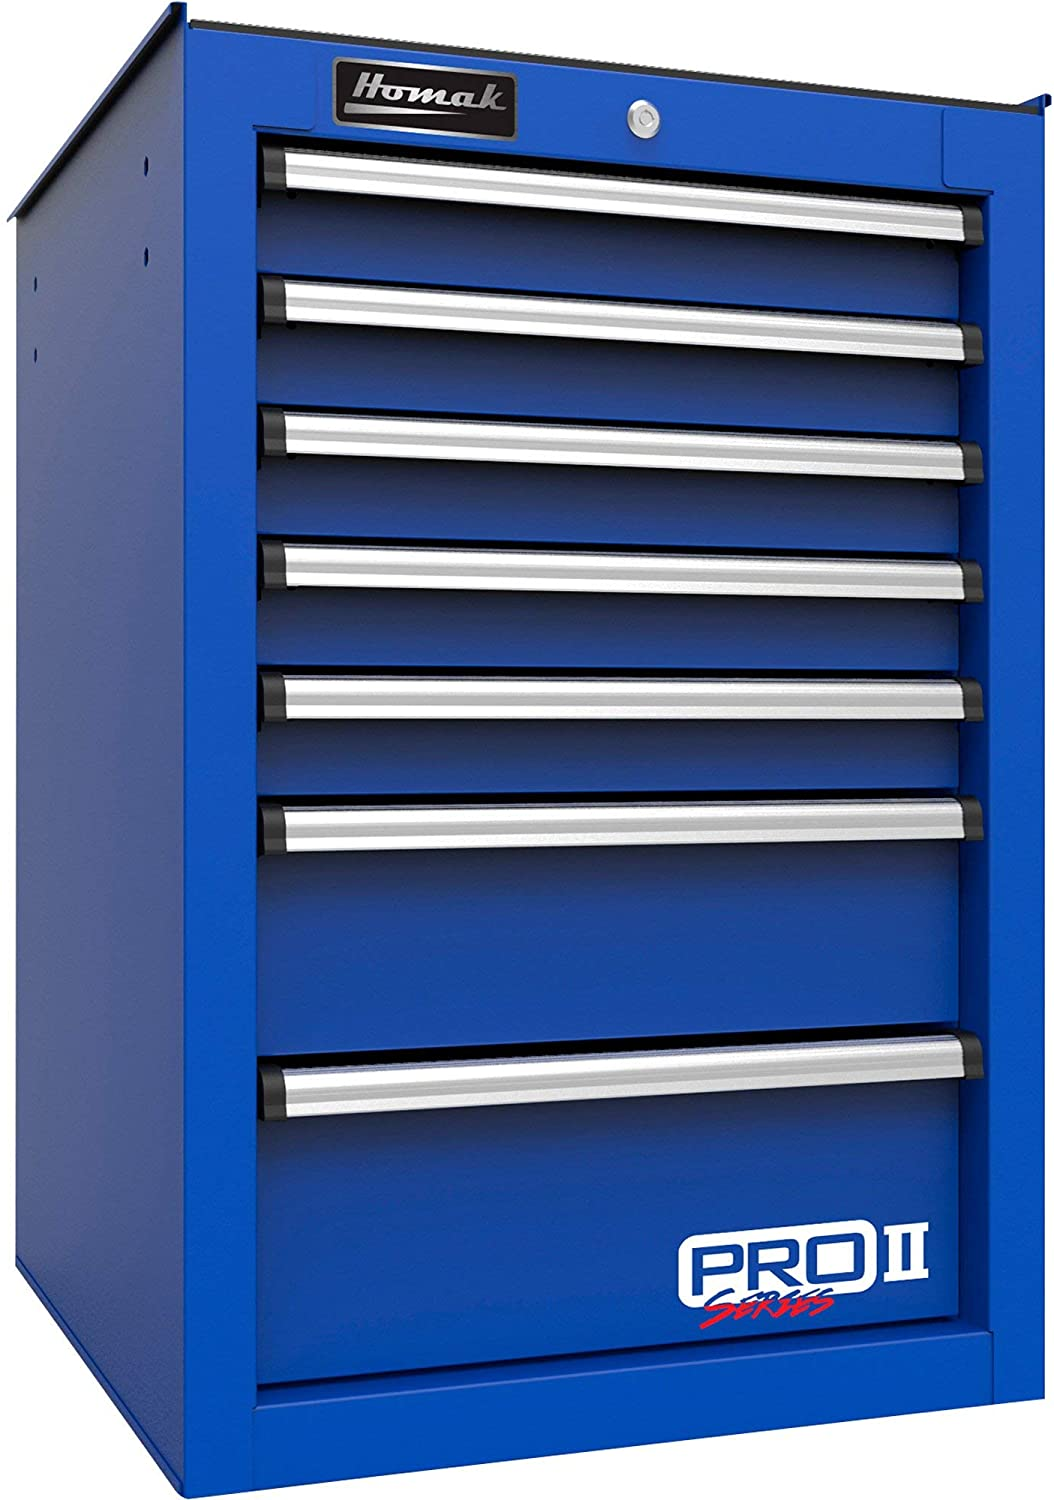 Homak 14in. Pro 2 Series 7-Drawer Side Tool Cabinet - Blue, 14.5in.W x 24.5in.D x 32.87in.H, Model# BL08014552